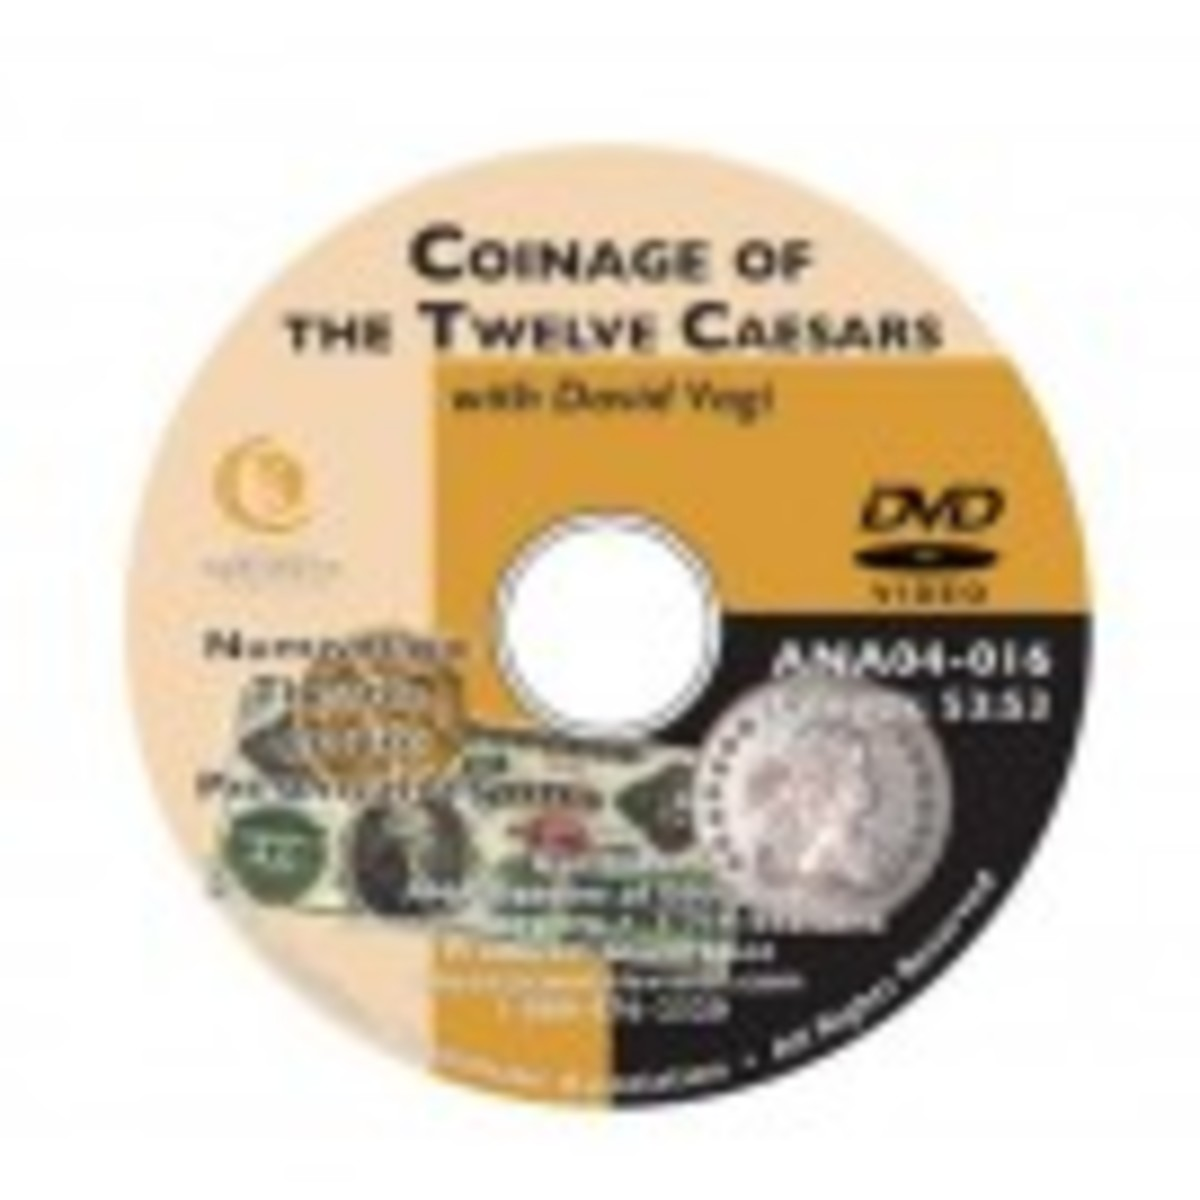 Discover how easy it is to collect these and other ancient coins.